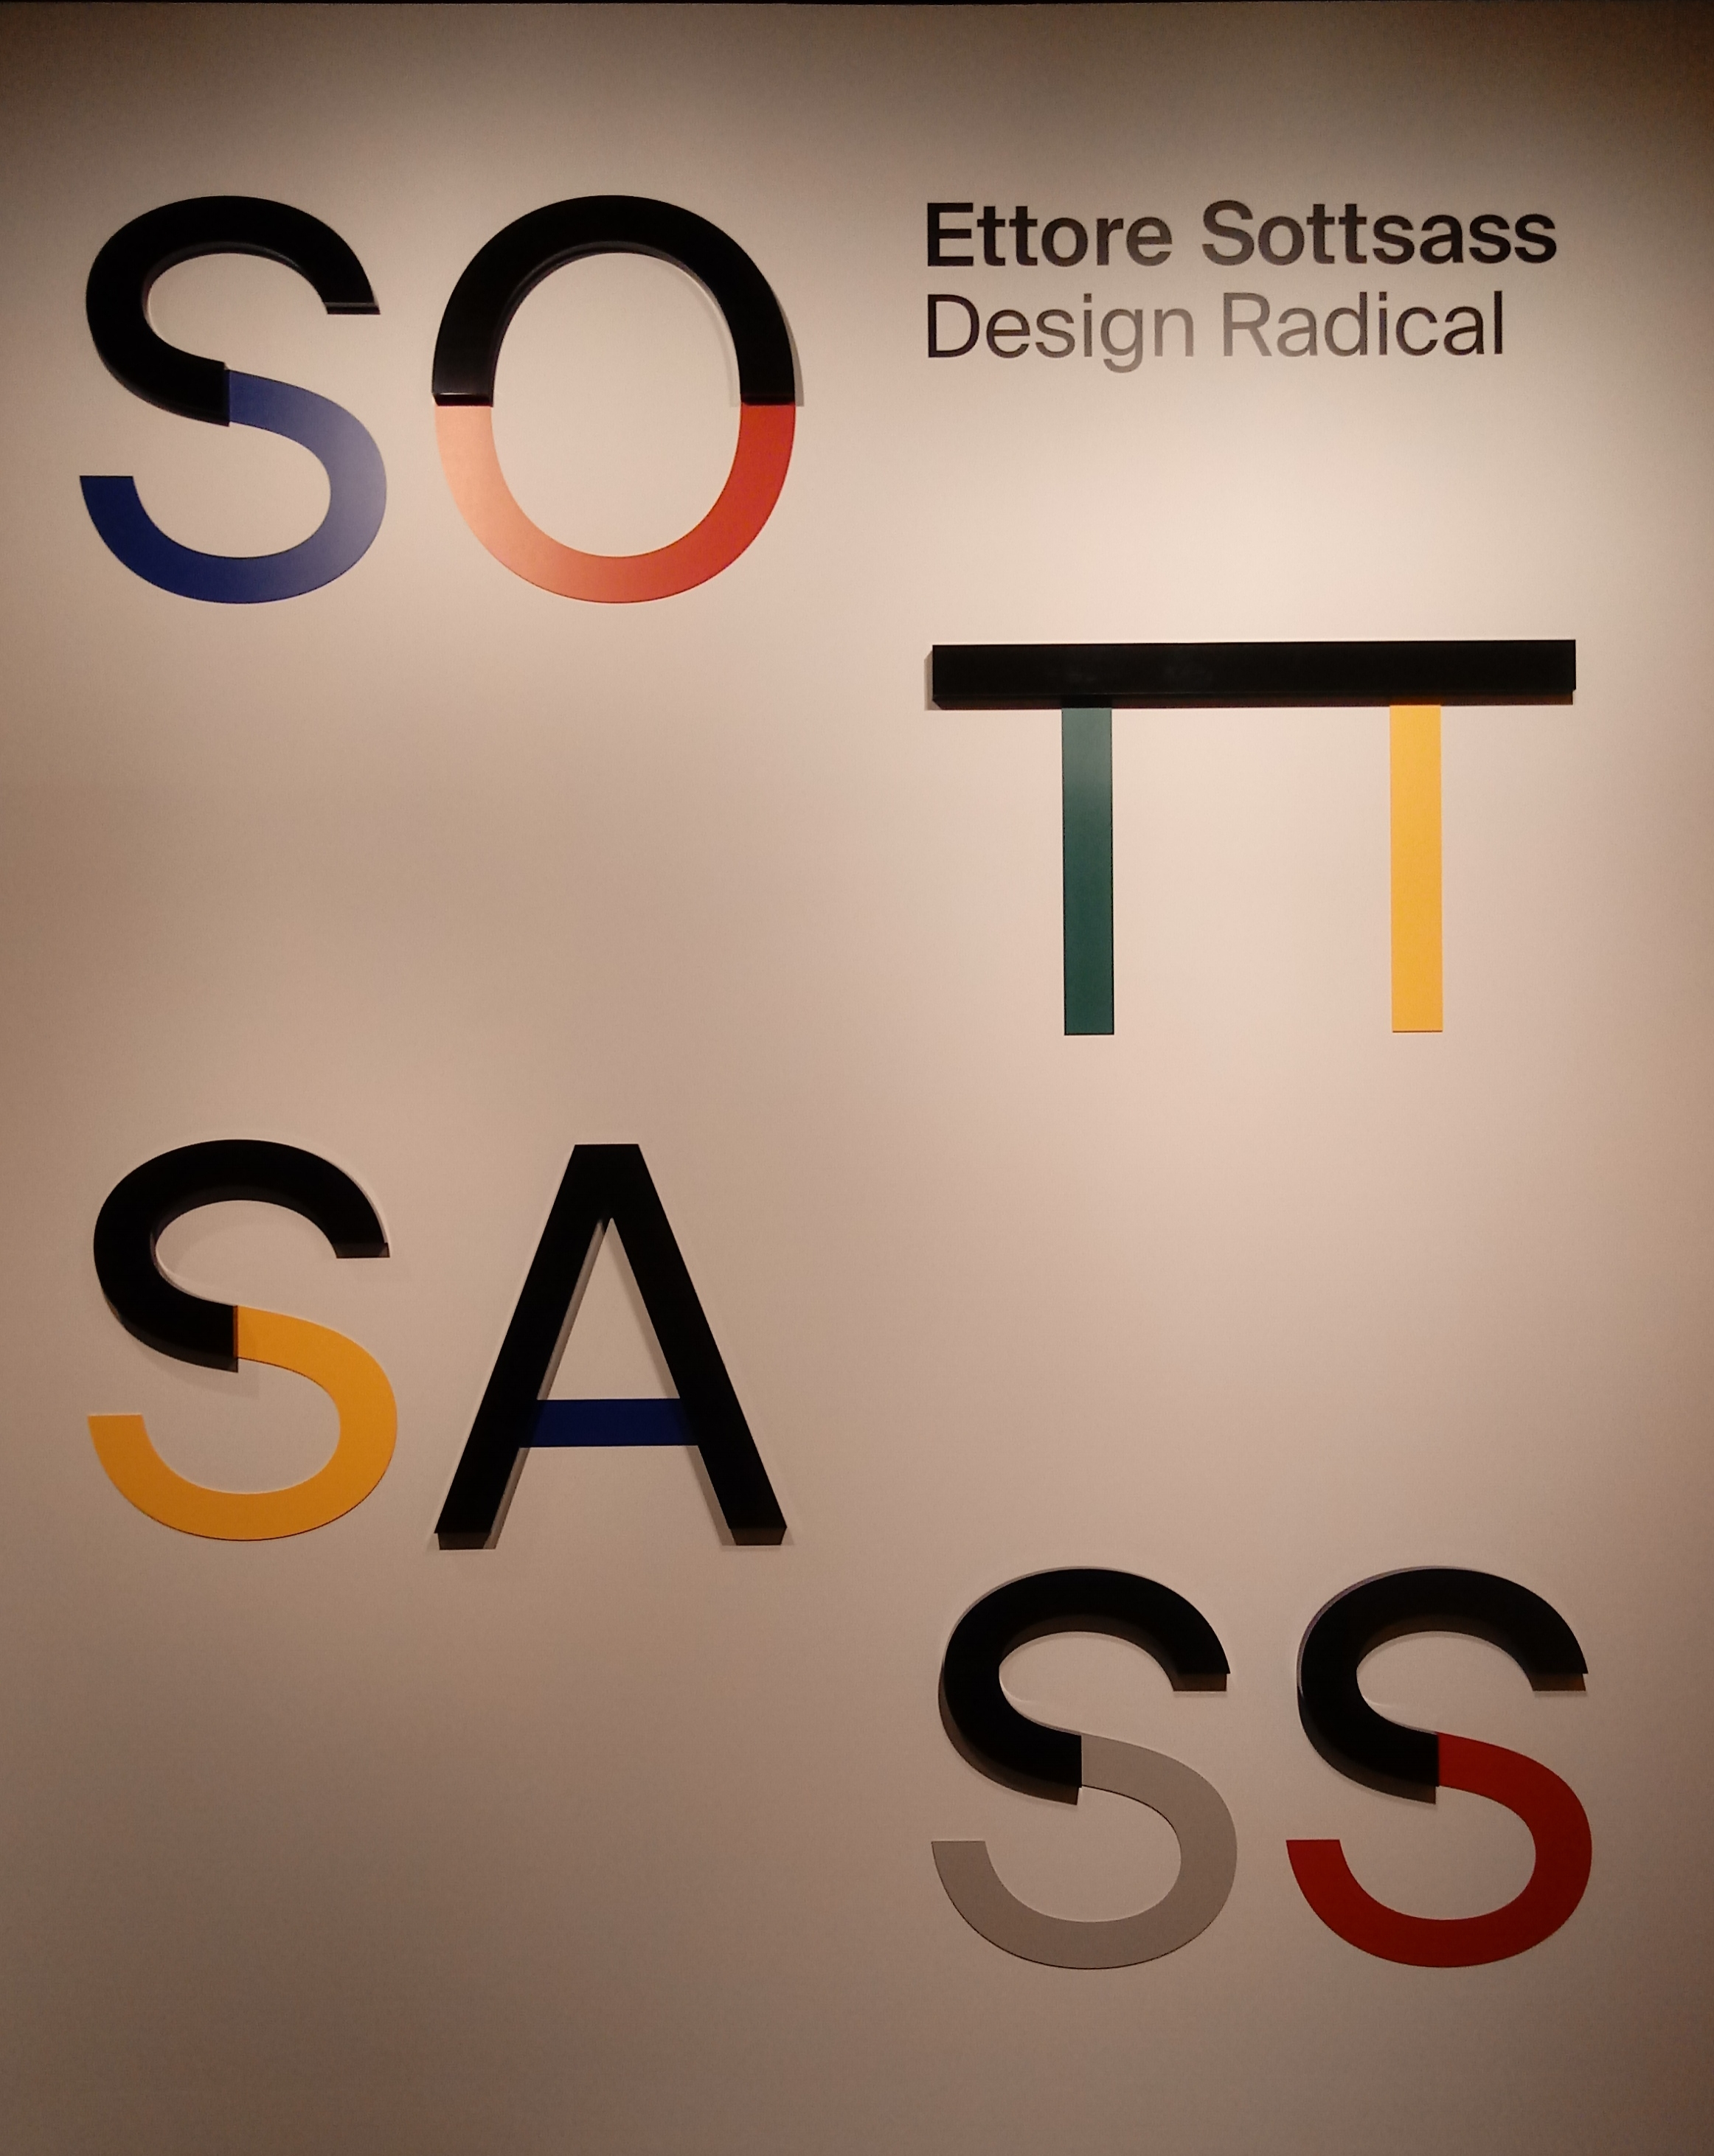 The Met Breuer presents a retrospective of the prolific Italian designer's 60-year career which spanned architecture, interiors, furniture, ceramics, glass, jewelry, textiles, painting and photography. To learn more about Ettore Sottsass and his work, visit  Artsy .